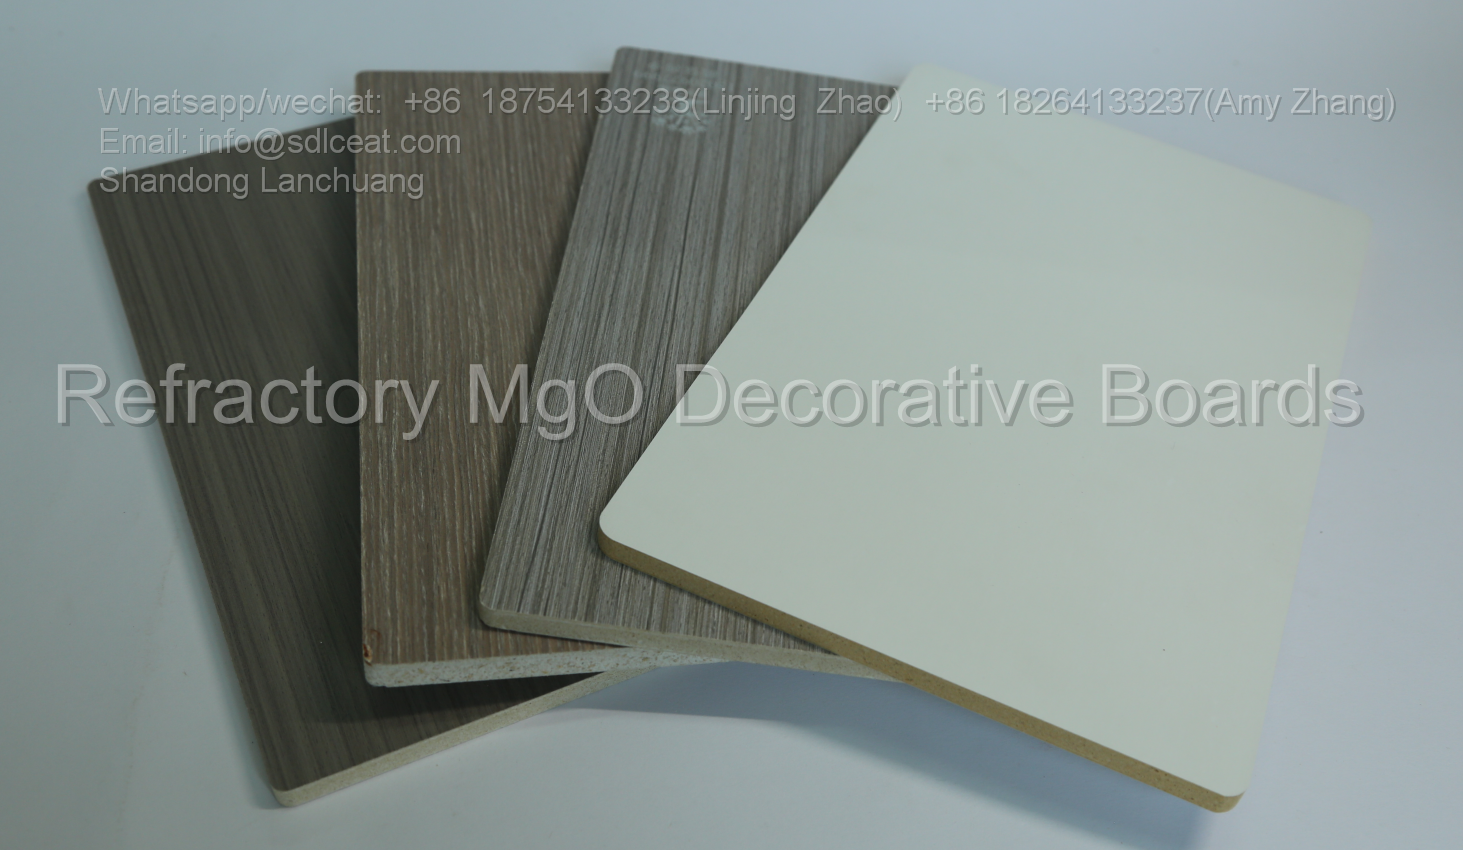 melamine mgo decorative material for home